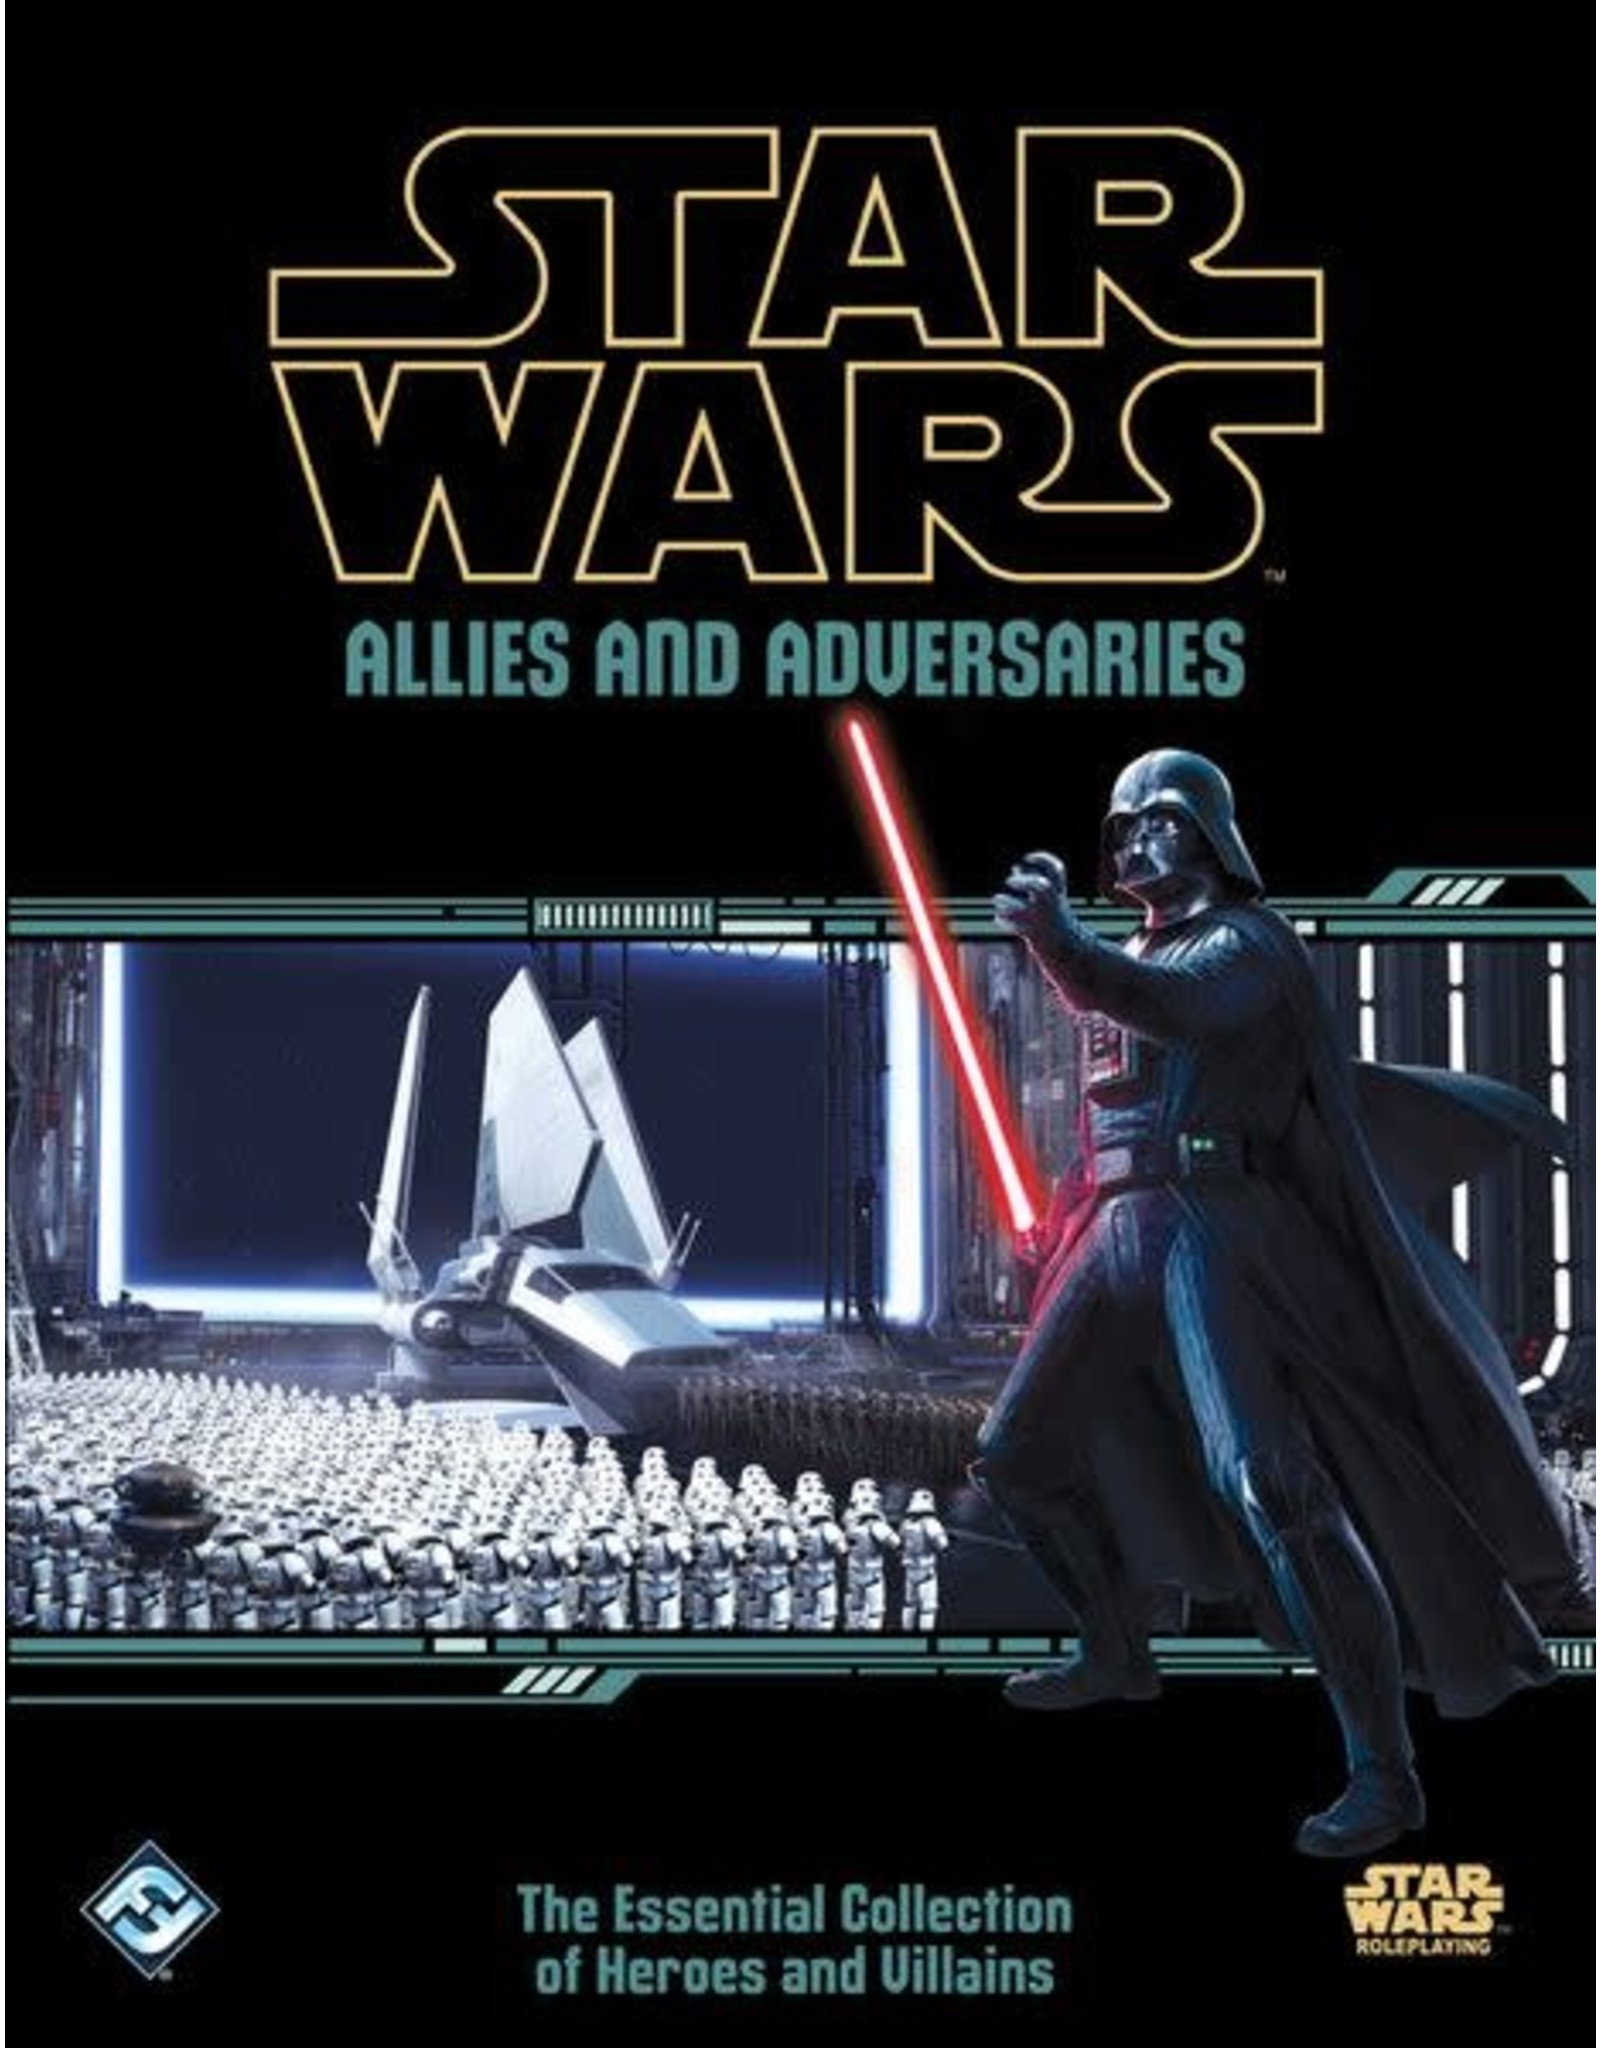 Star Wars: Allies and Adversaries